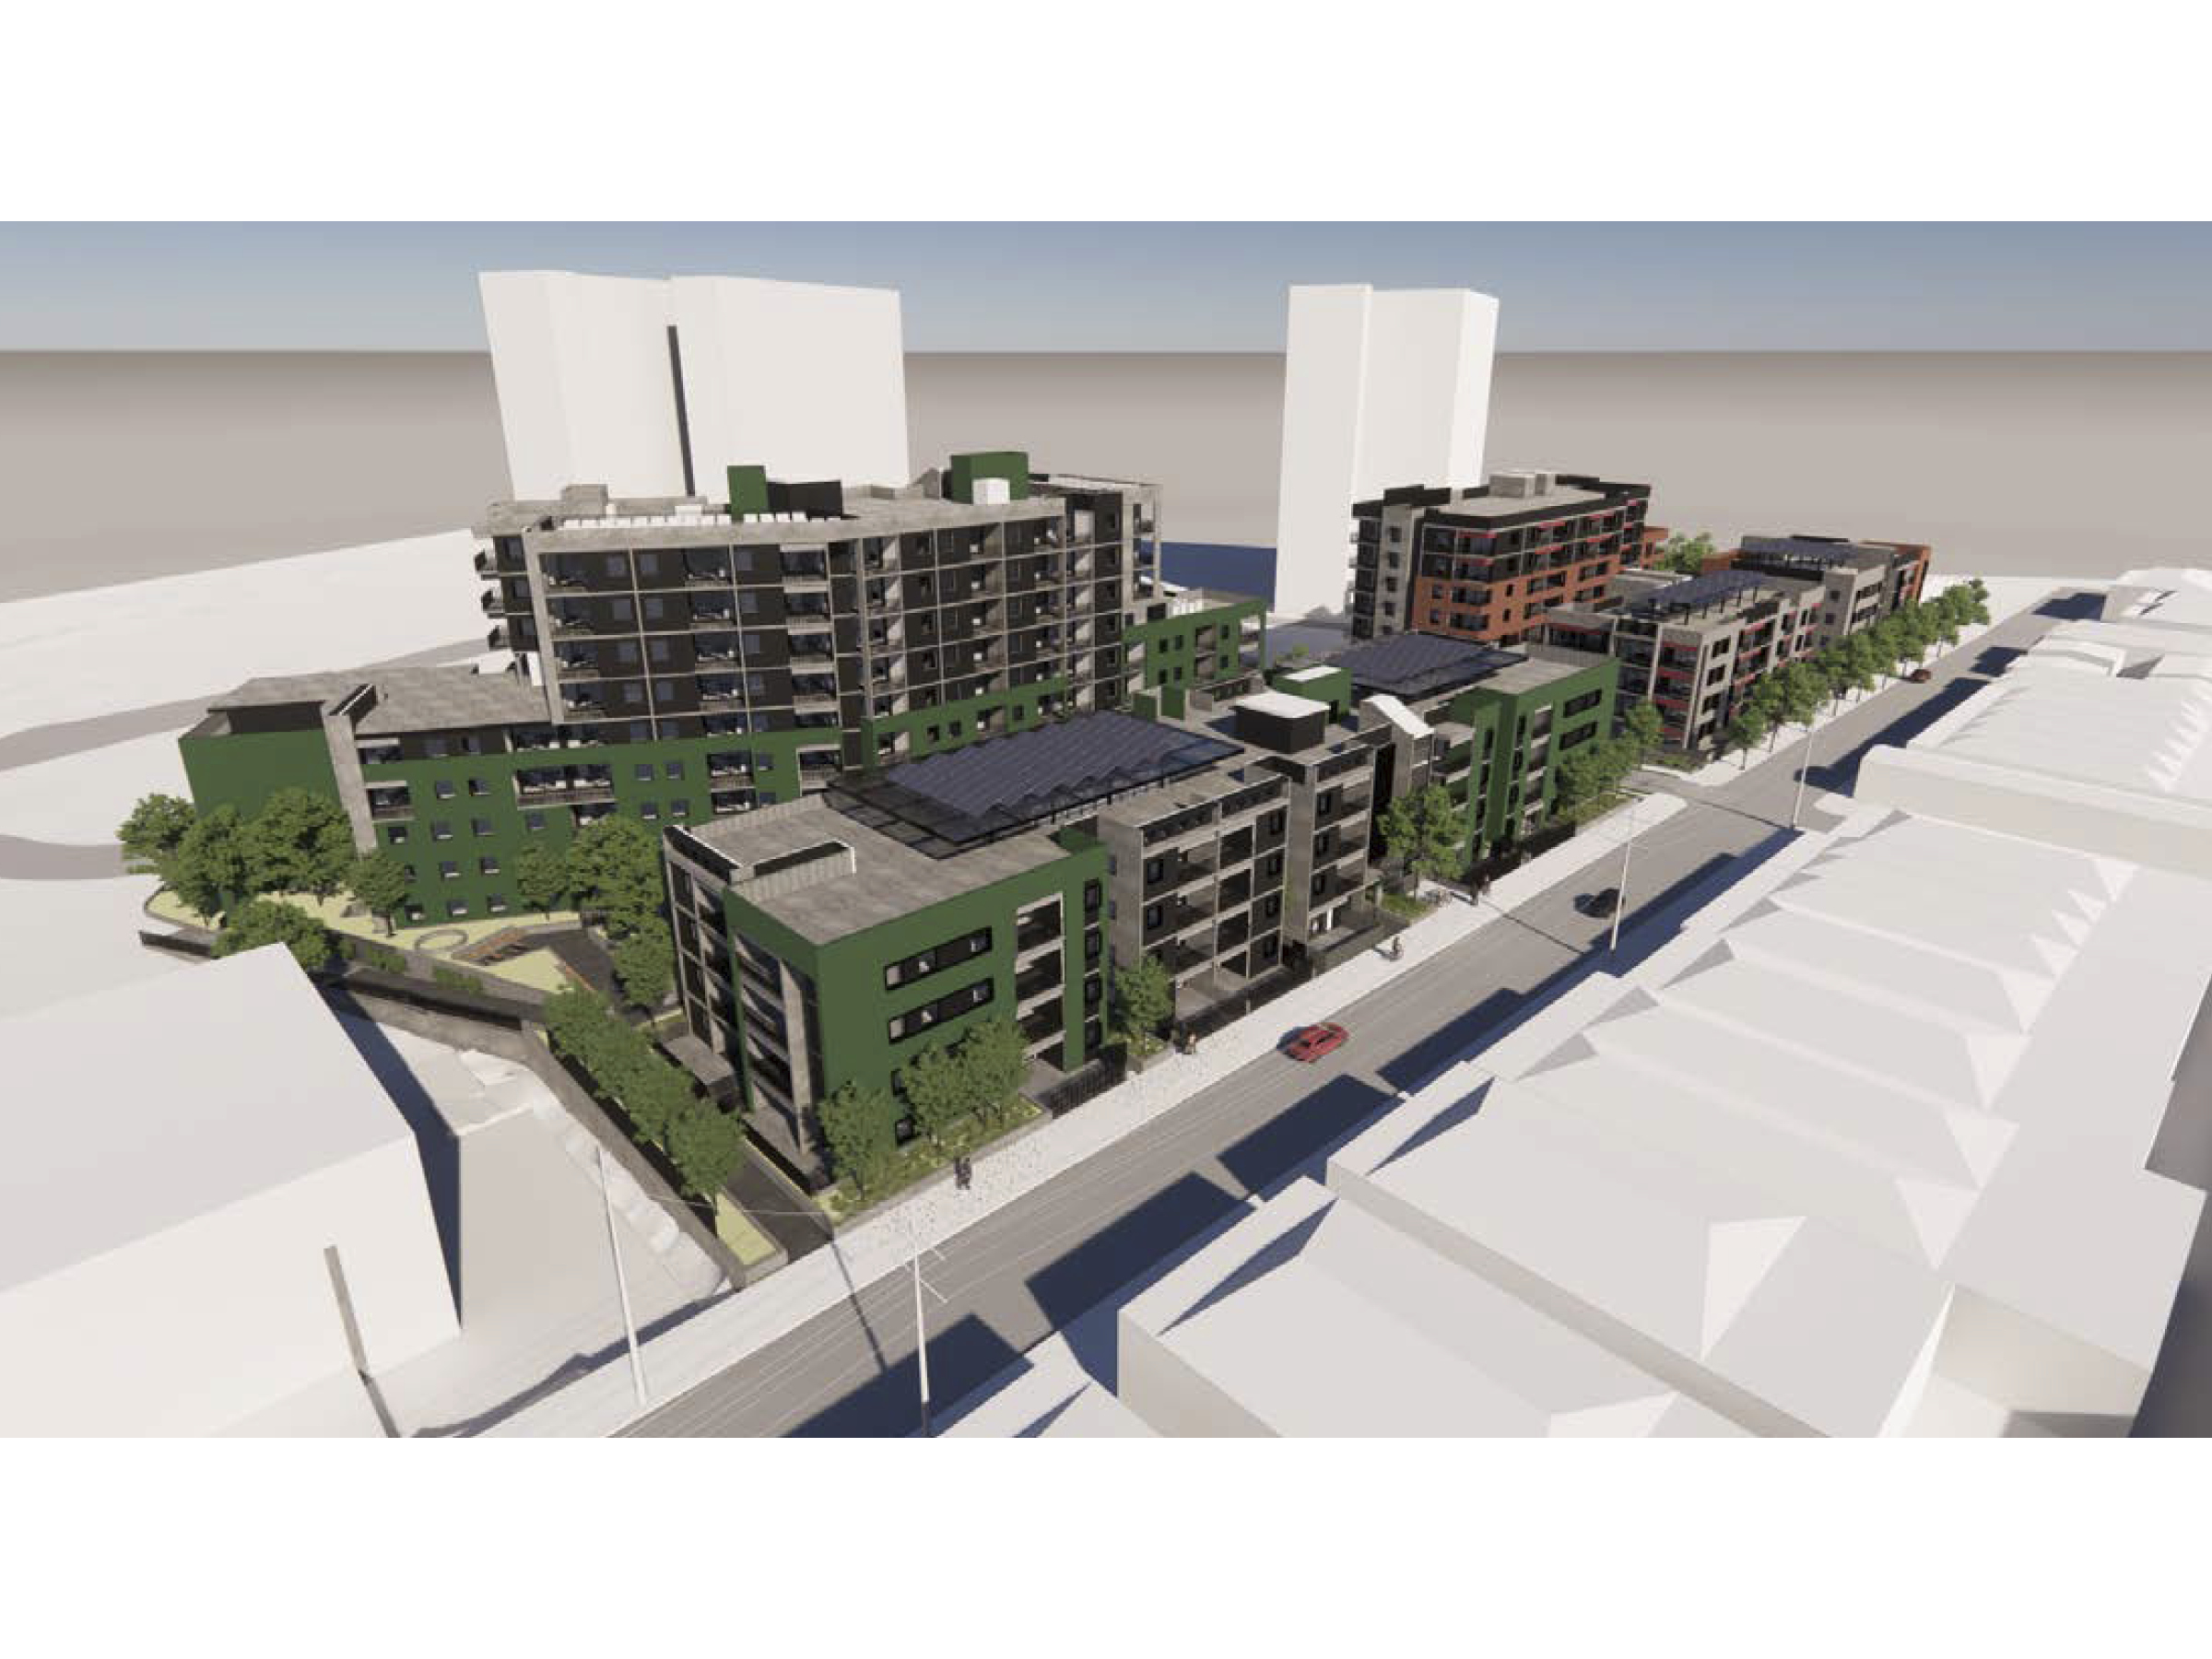 Artist impression looking southeast at the new development across Victoria Street